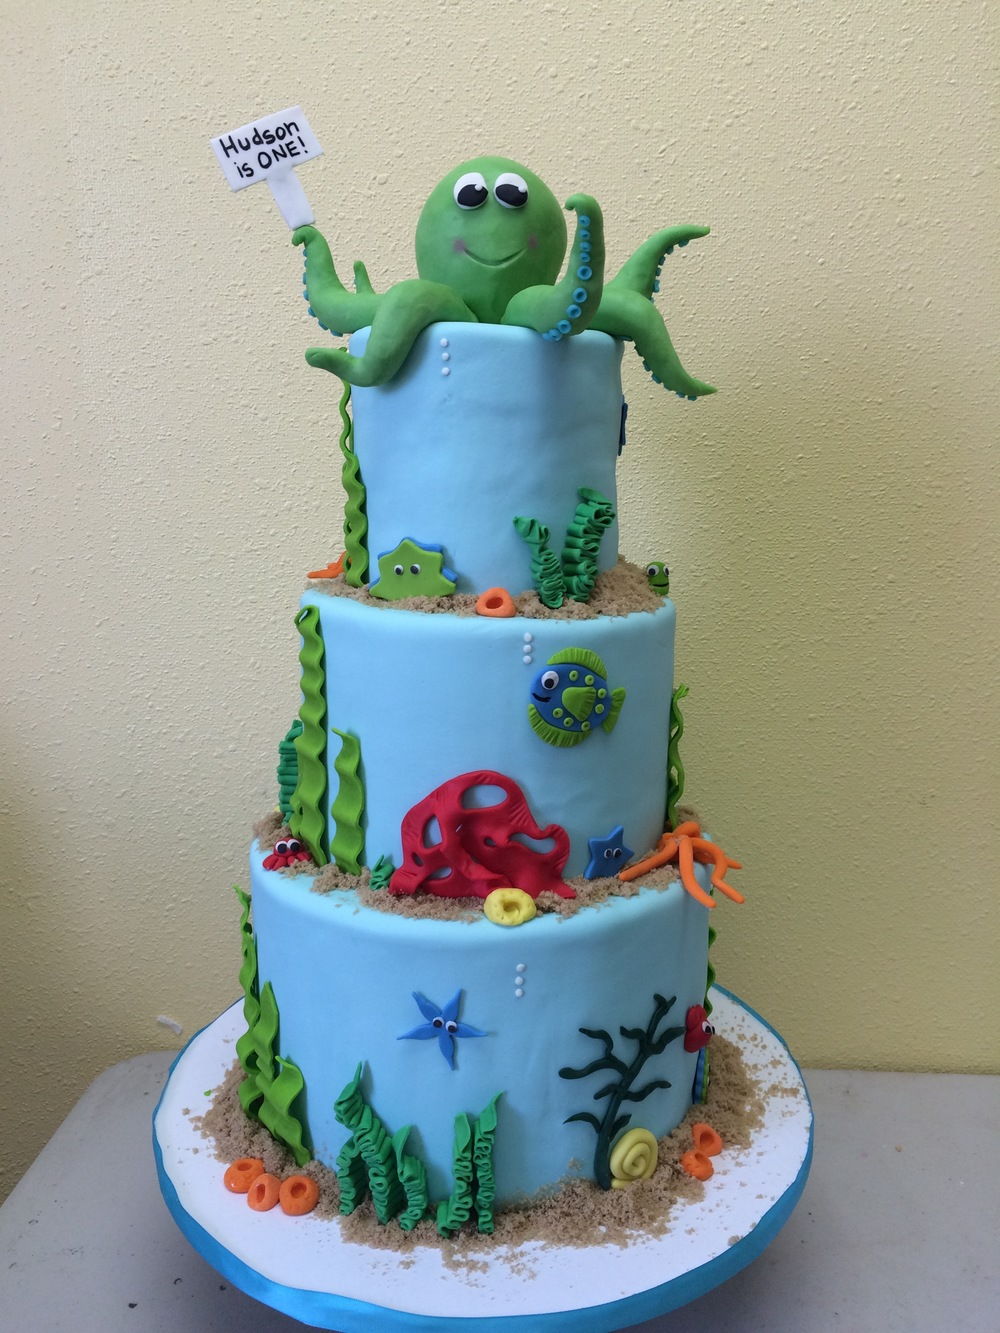 Octopus Birthday Cake | Sugar Lab Bake Shop